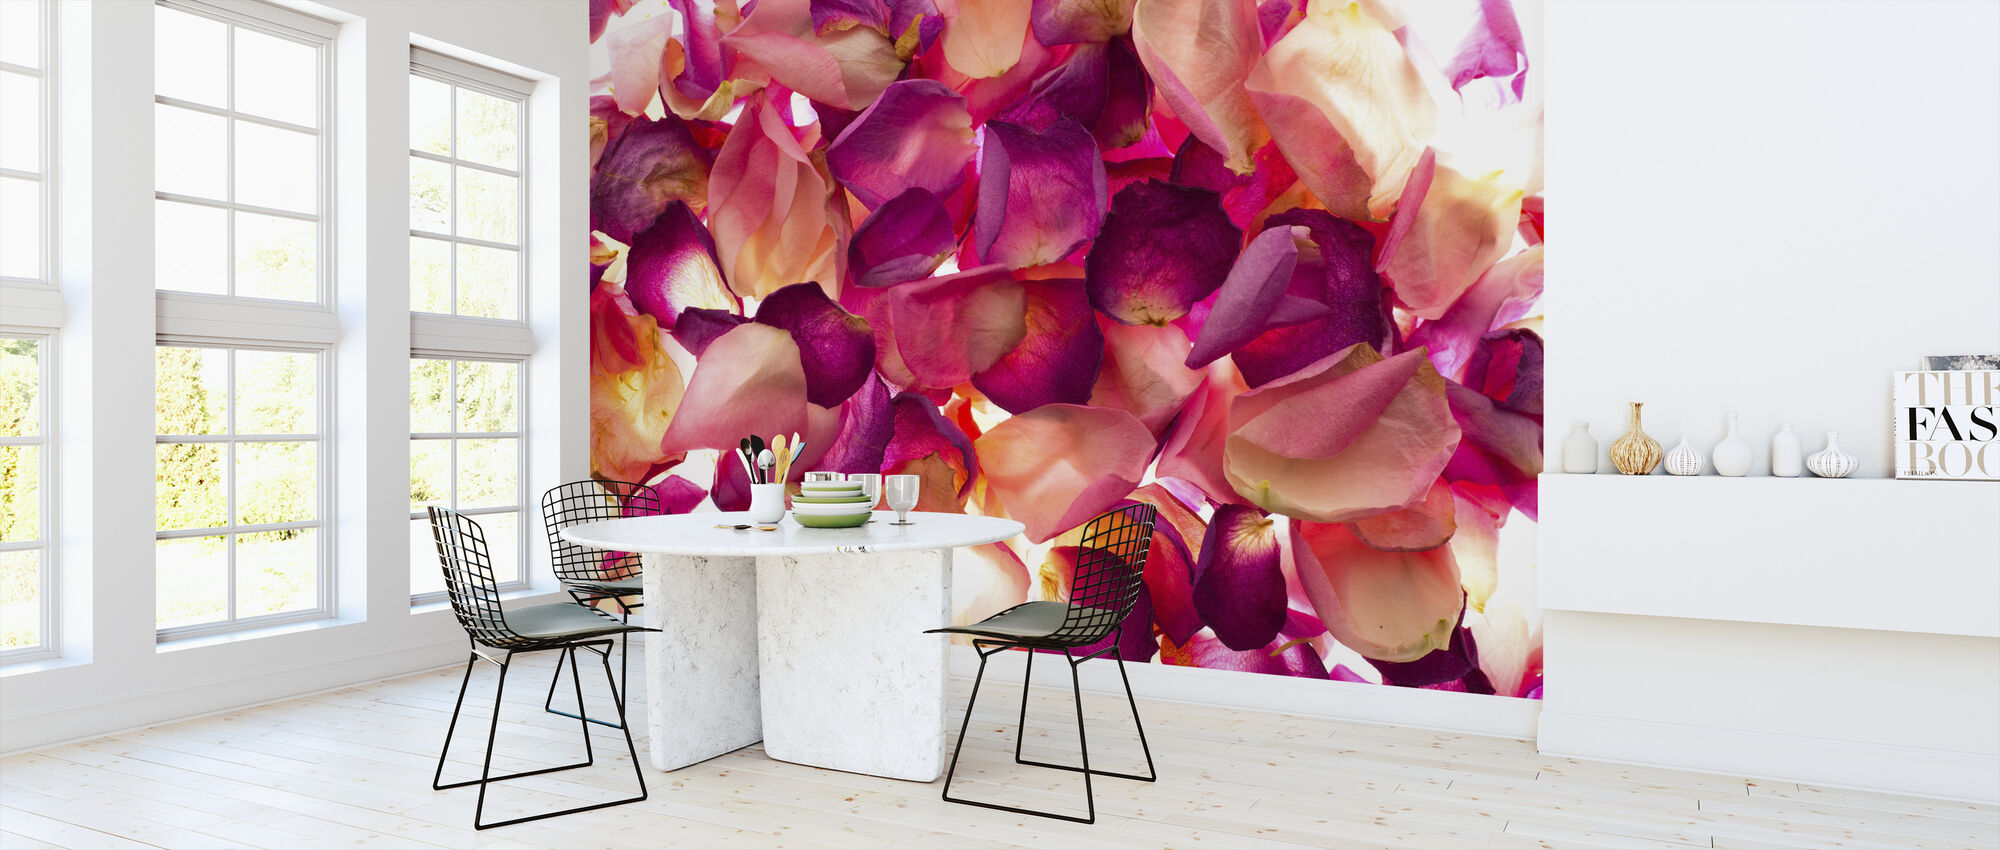 Bed of Rose Petals - Wallpaper - Kitchen